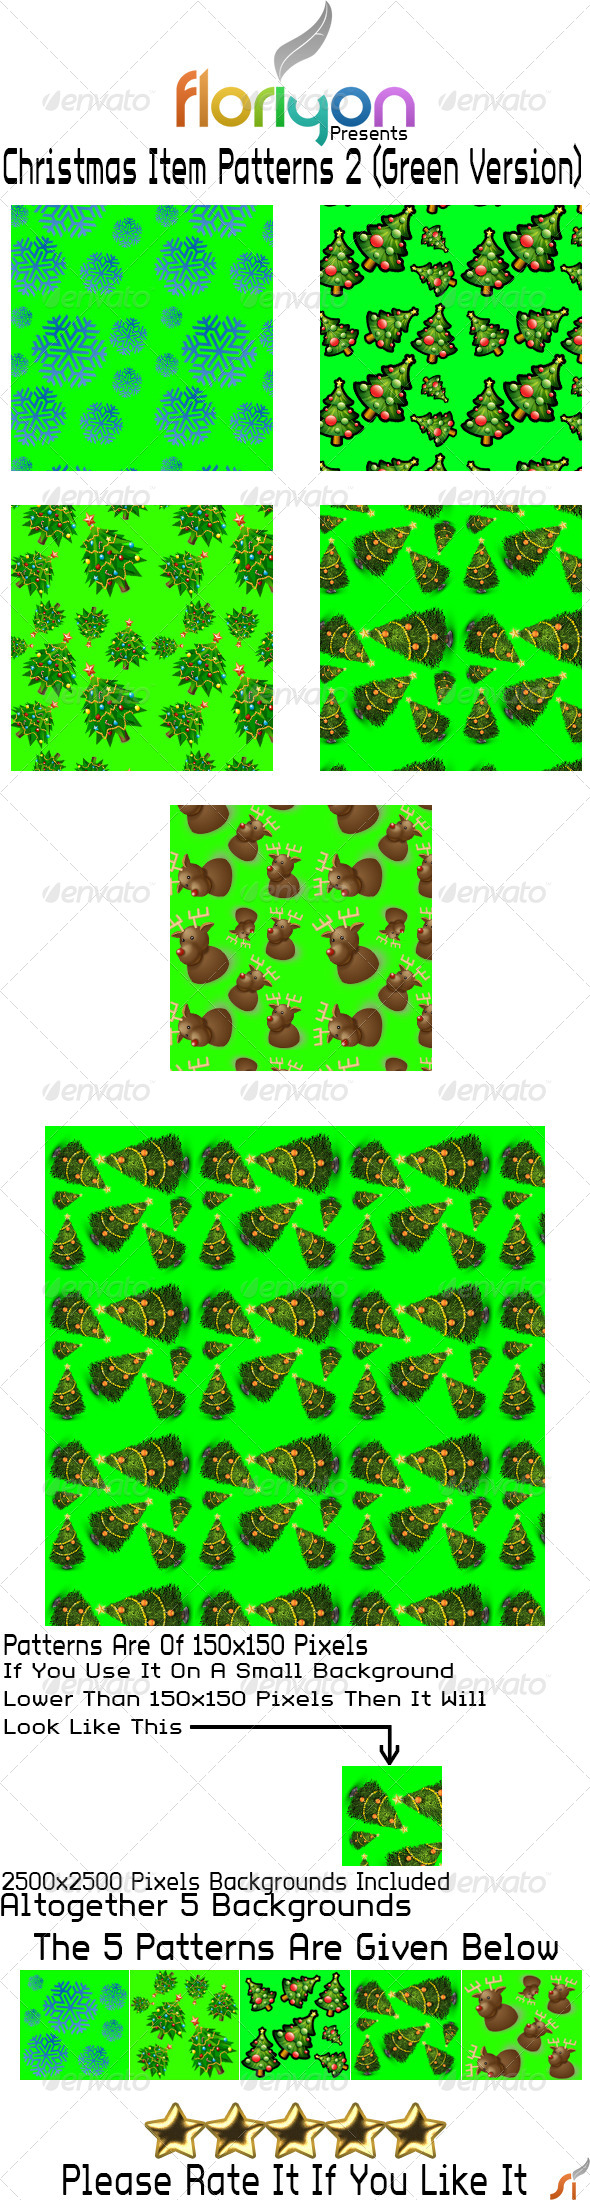 GraphicRiver Christmas Item Patterns 2 Green Version 4876132